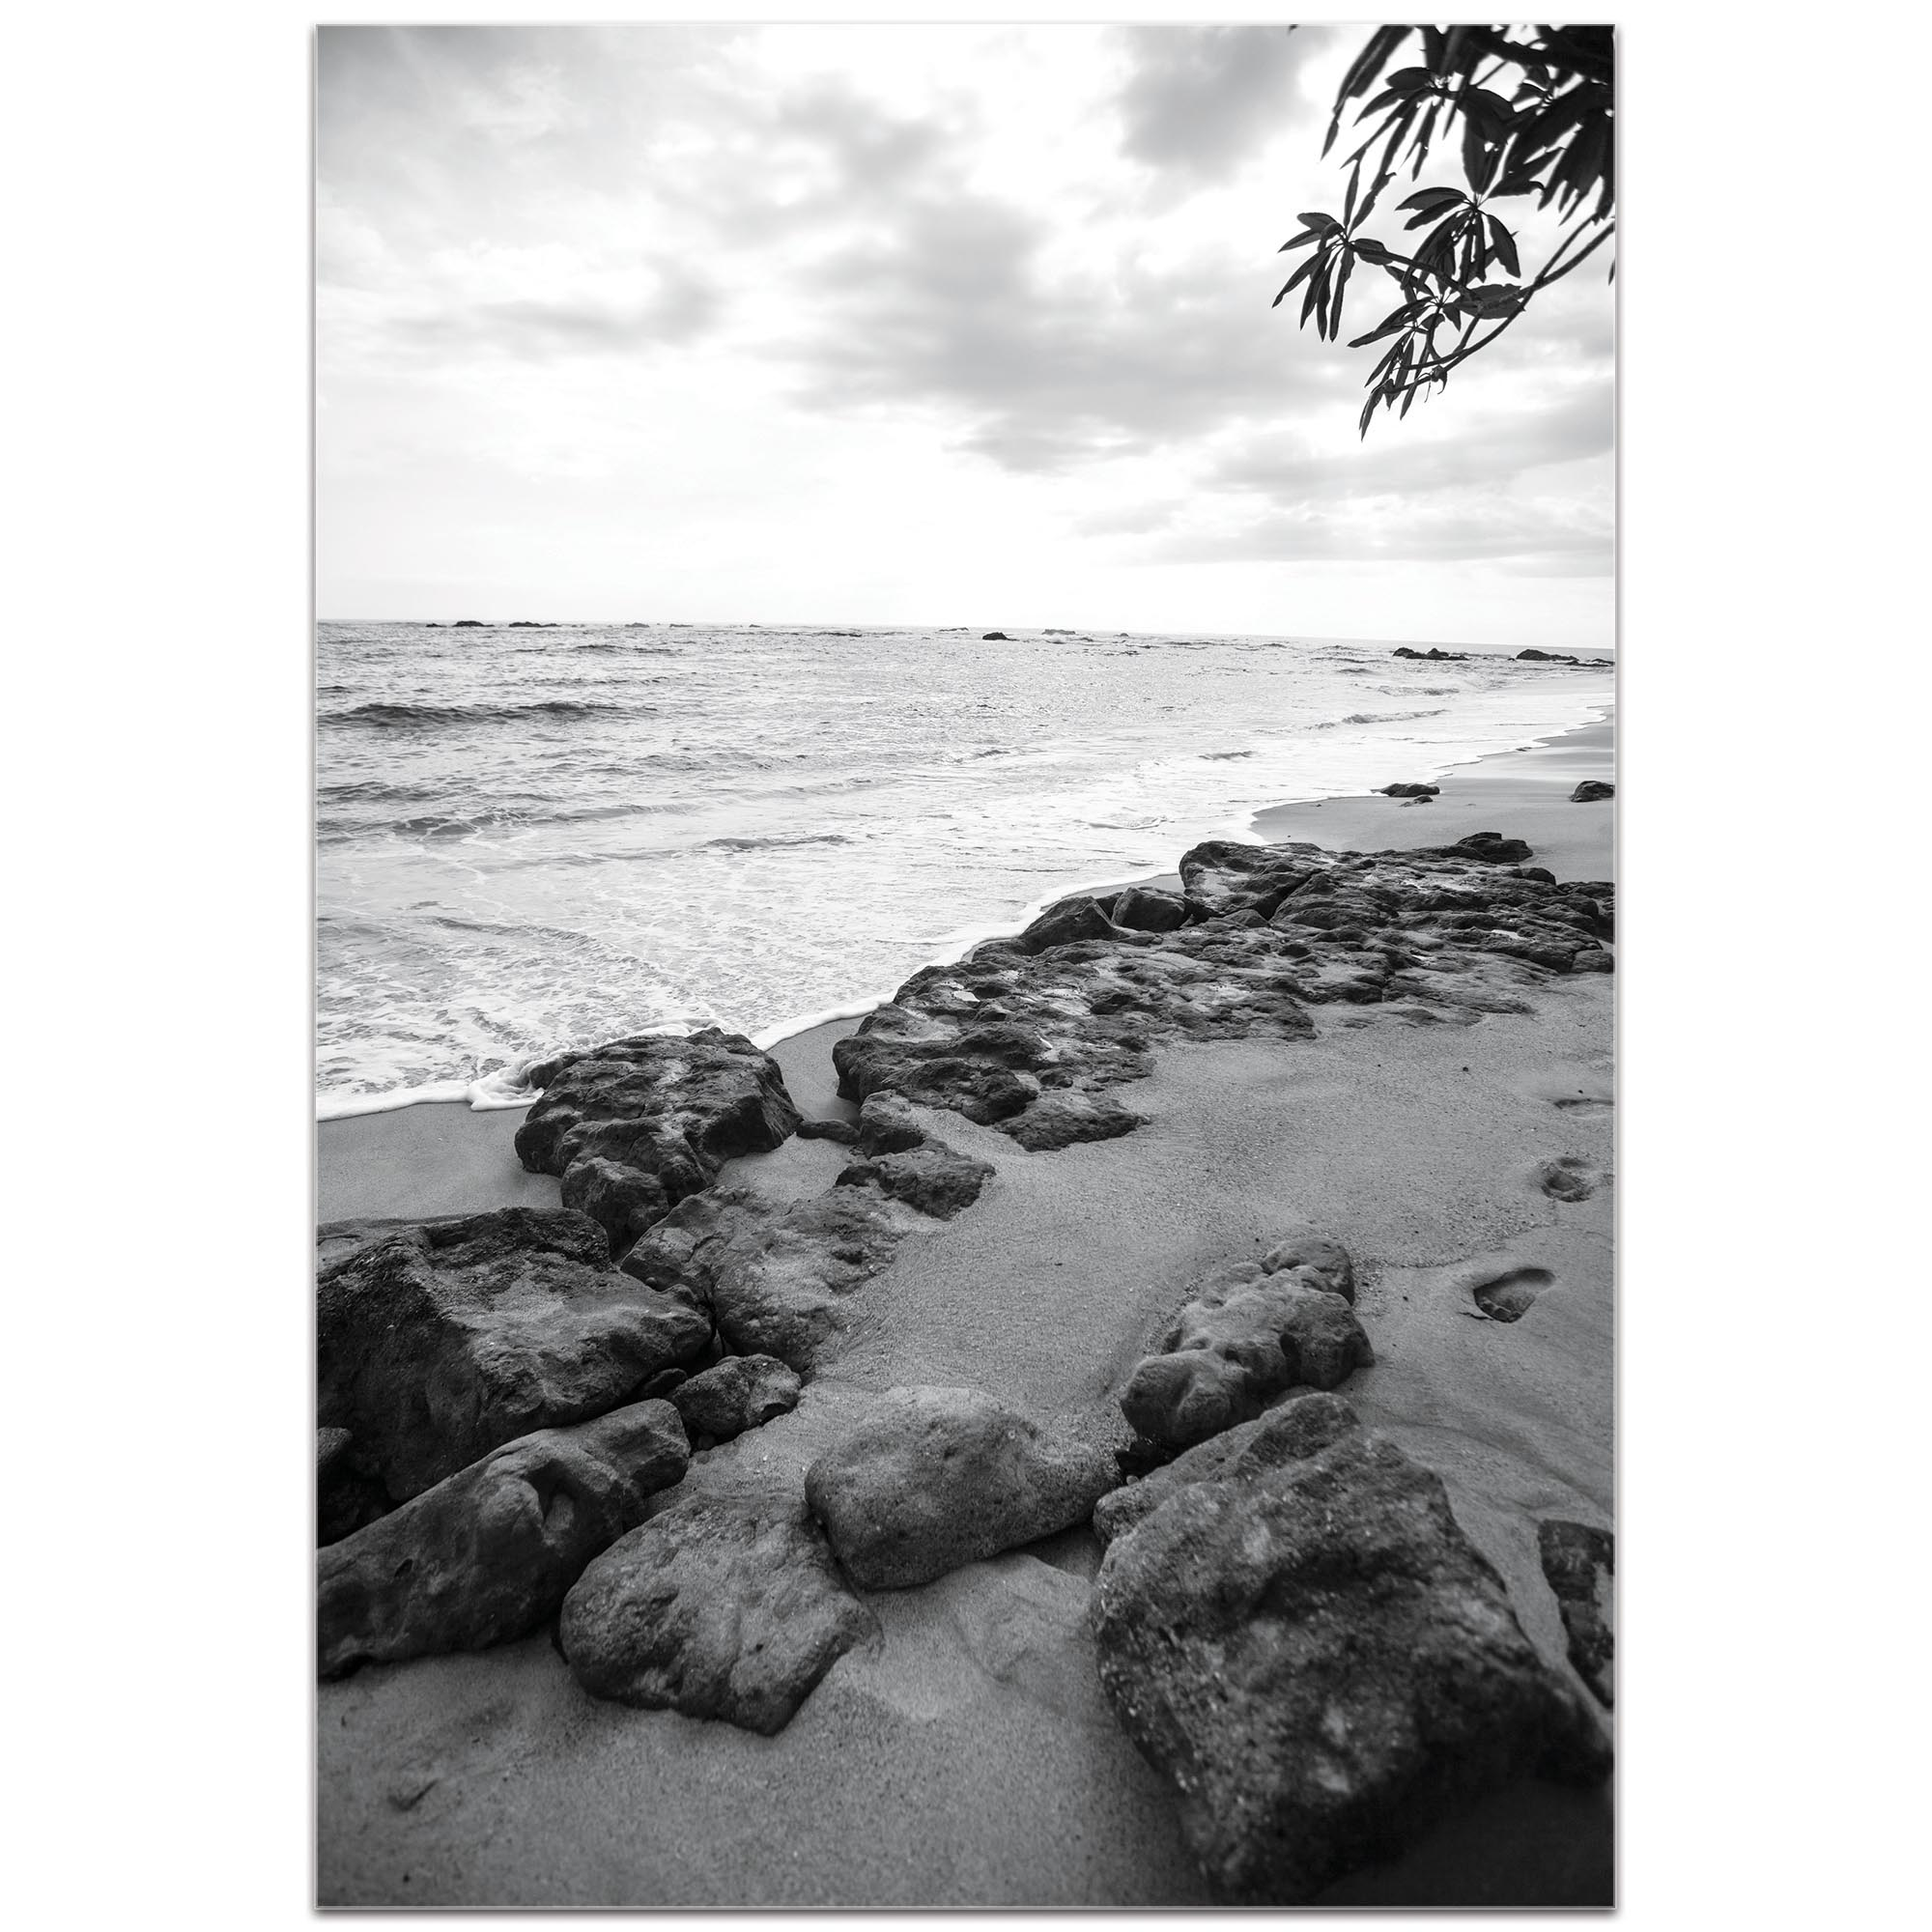 Black & White Photography 'The Coastline' - Coastal Art on Metal or Plexiglass - Image 2